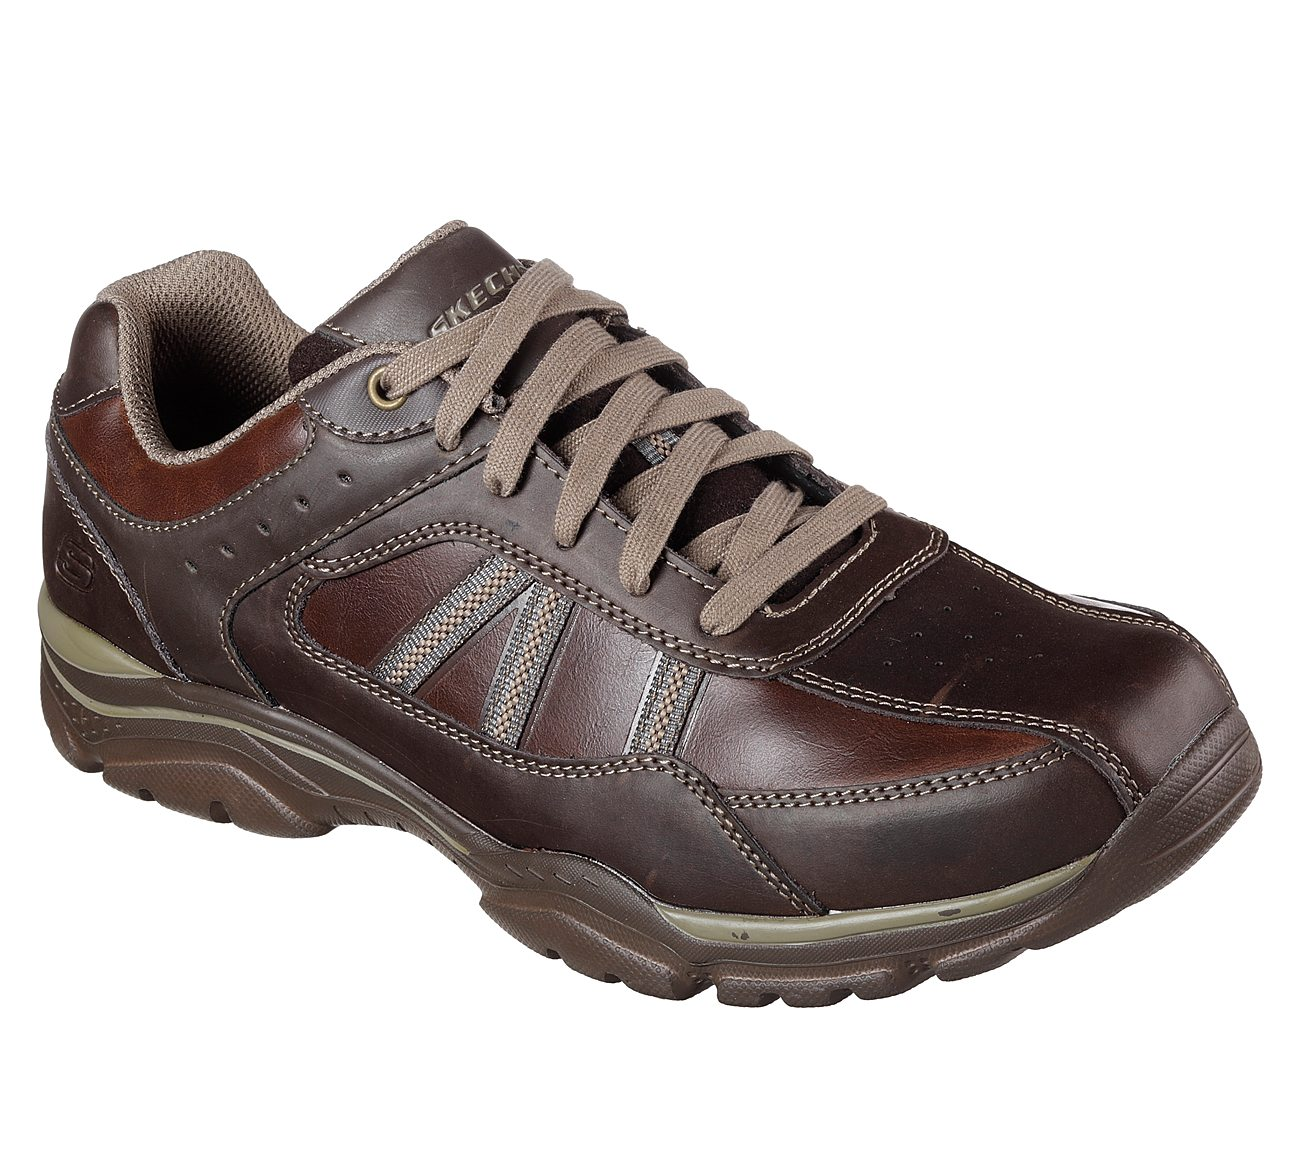 skechers mens brown leather trainers